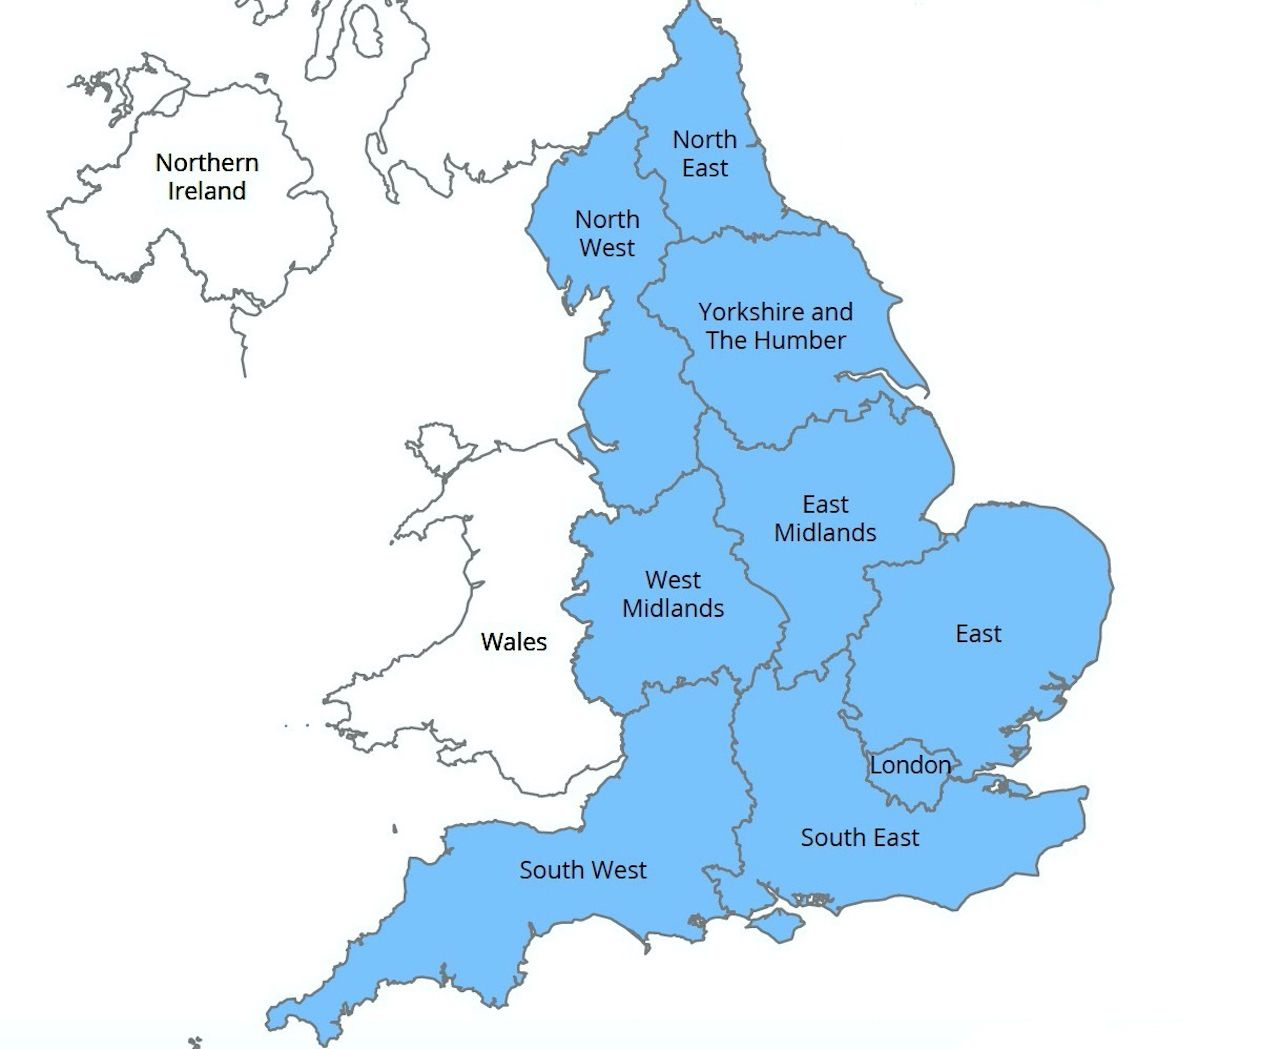 Map of regions of Britain